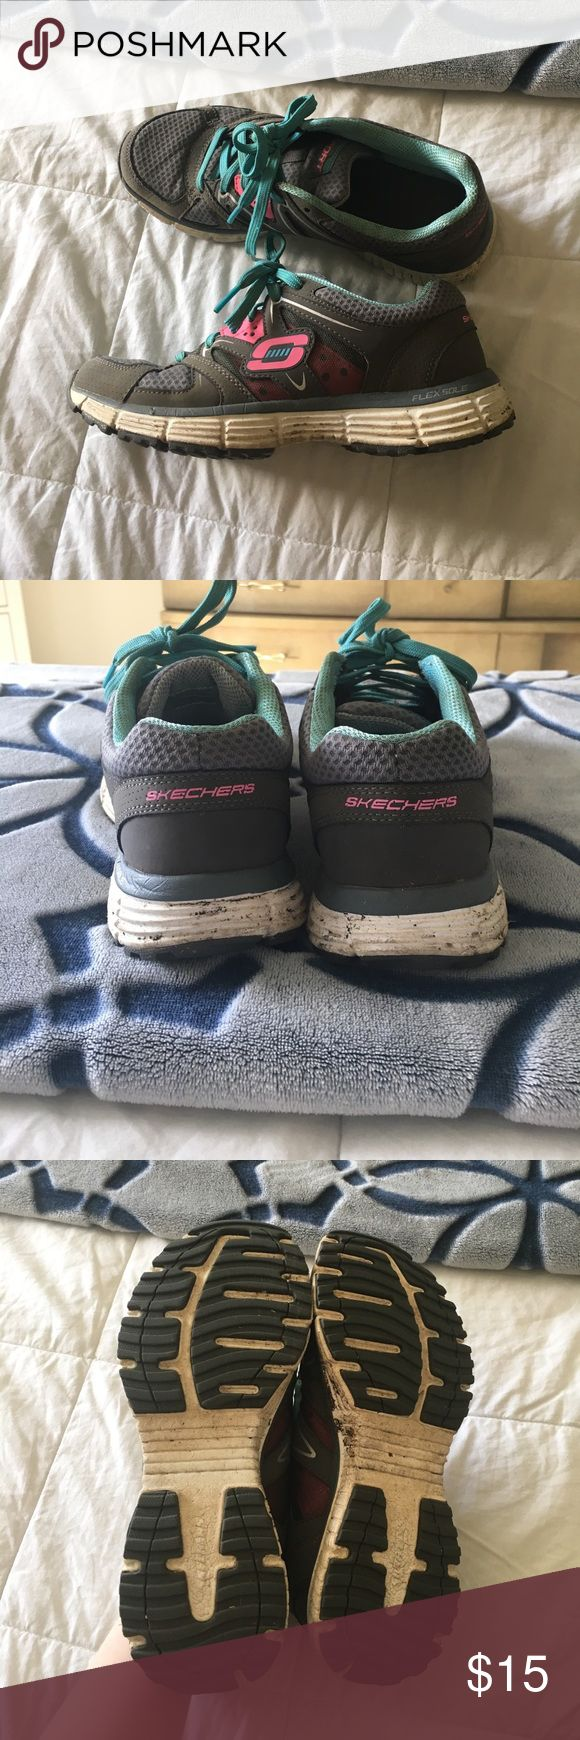 Skechers flex sole shoes Worn but still in good condition. Skechers Shoes Athletic Shoes